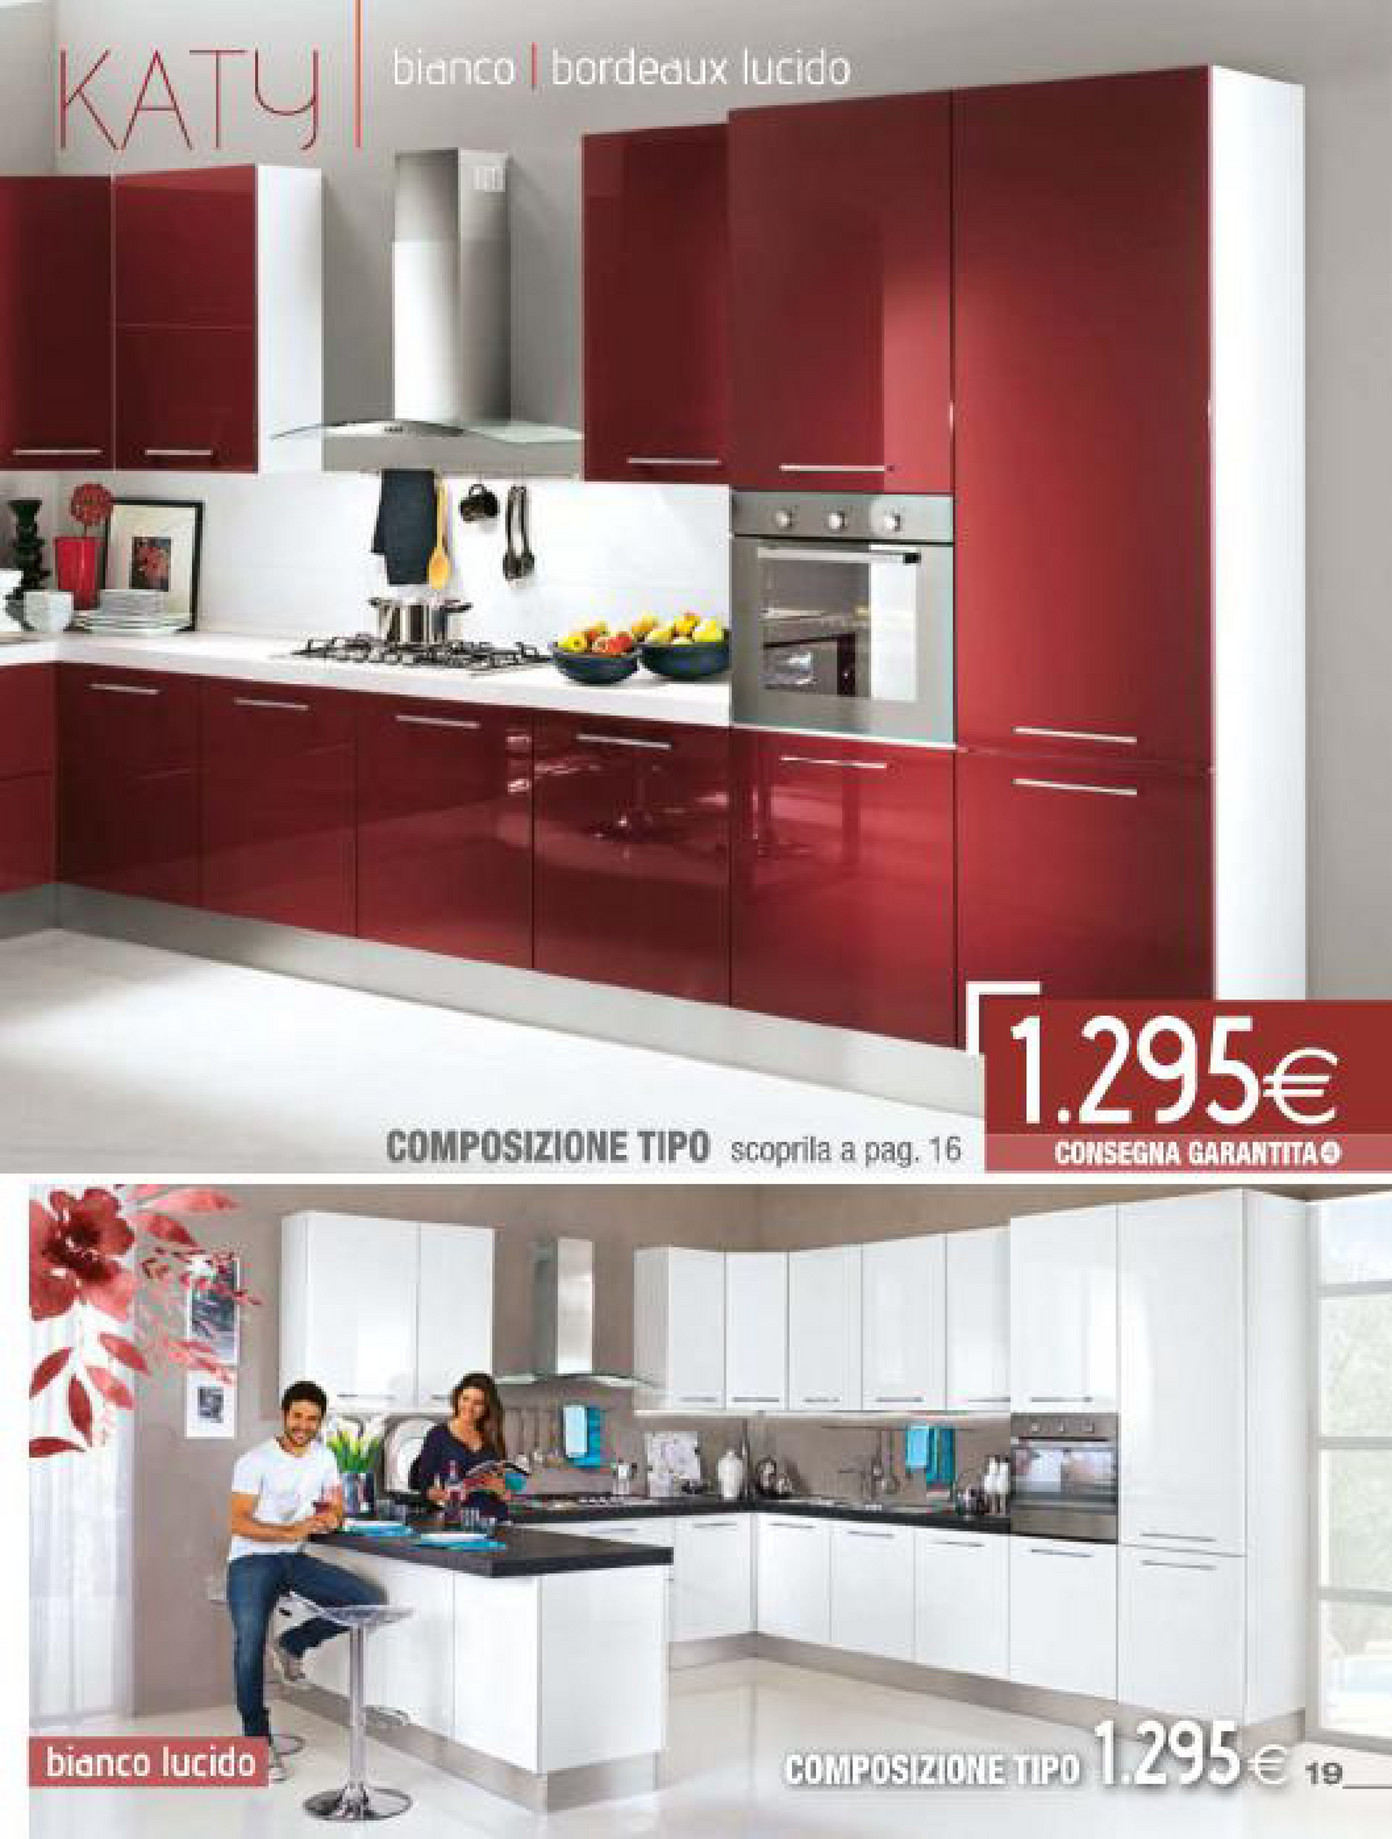 Awesome mondo convenienza cucine catalogo 2014 - Mondo convenienza verona cucine ...